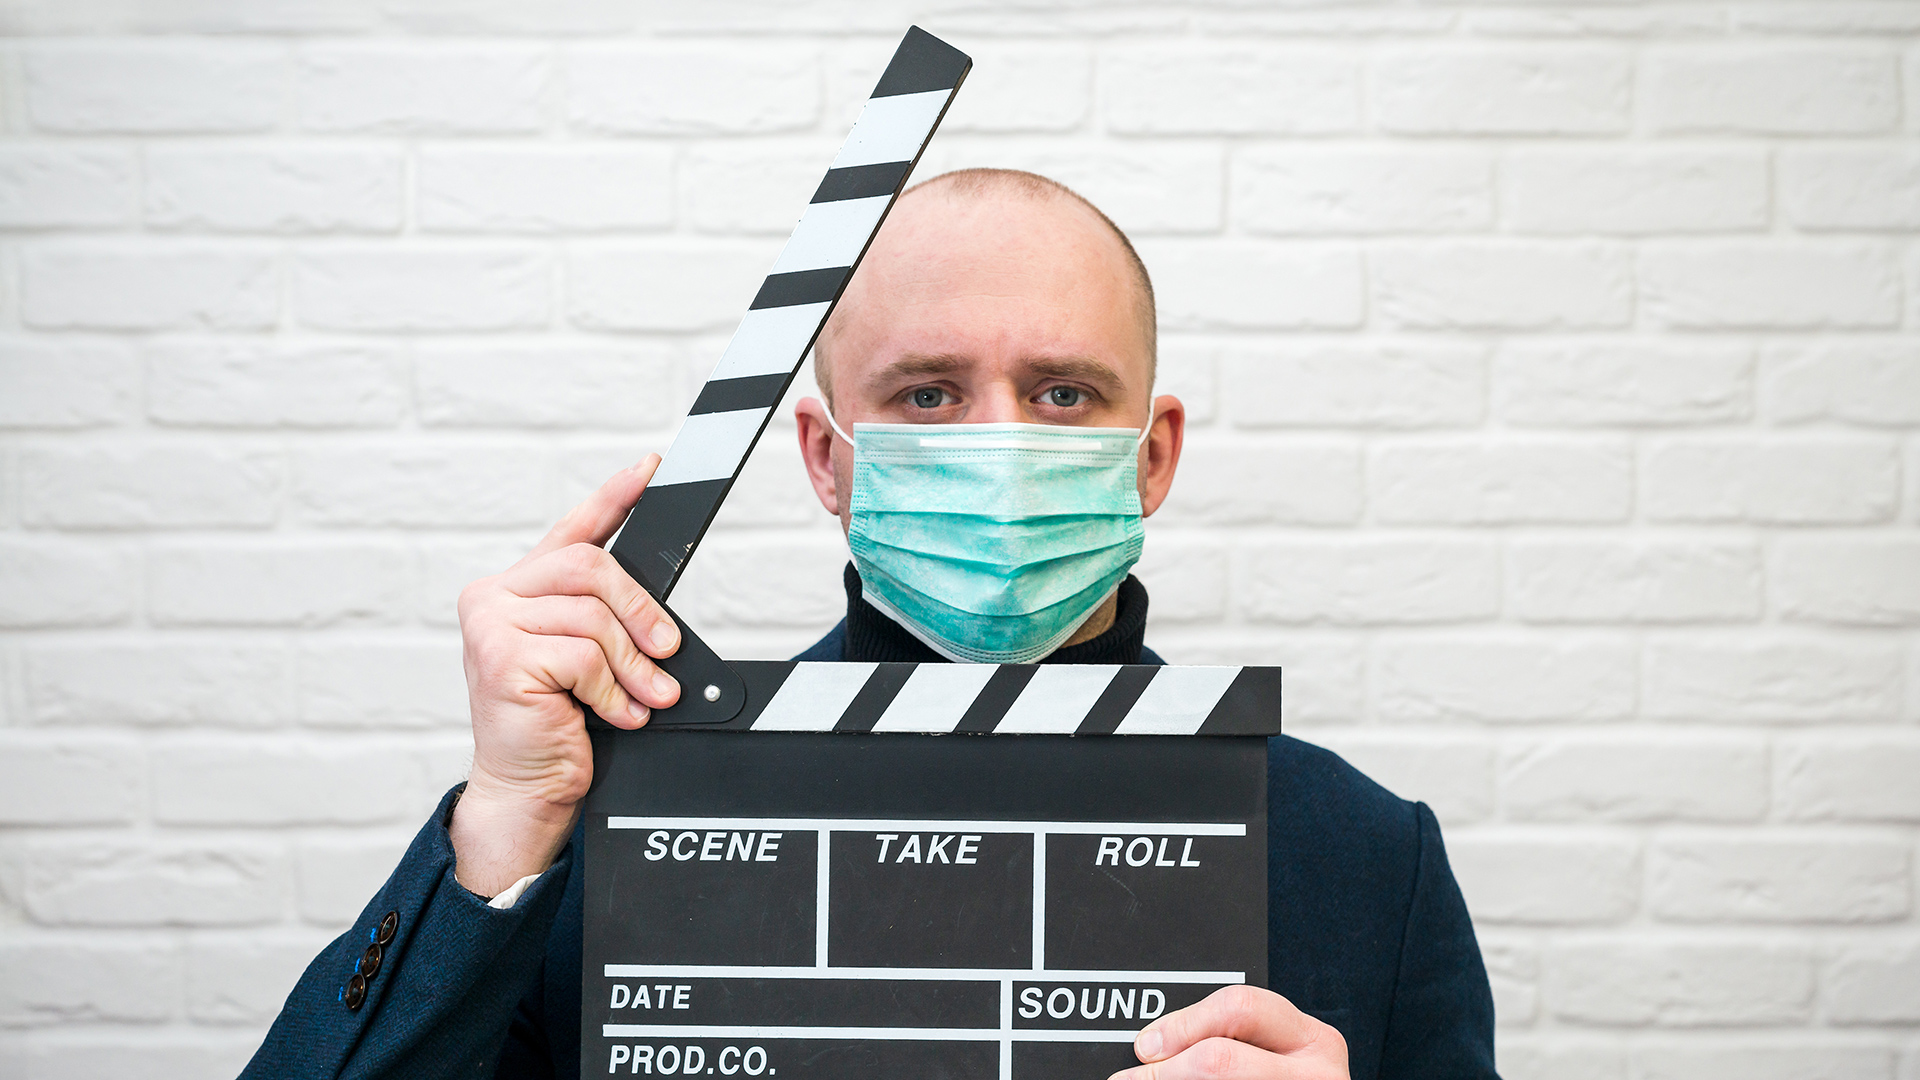 Making television during a pandemic.